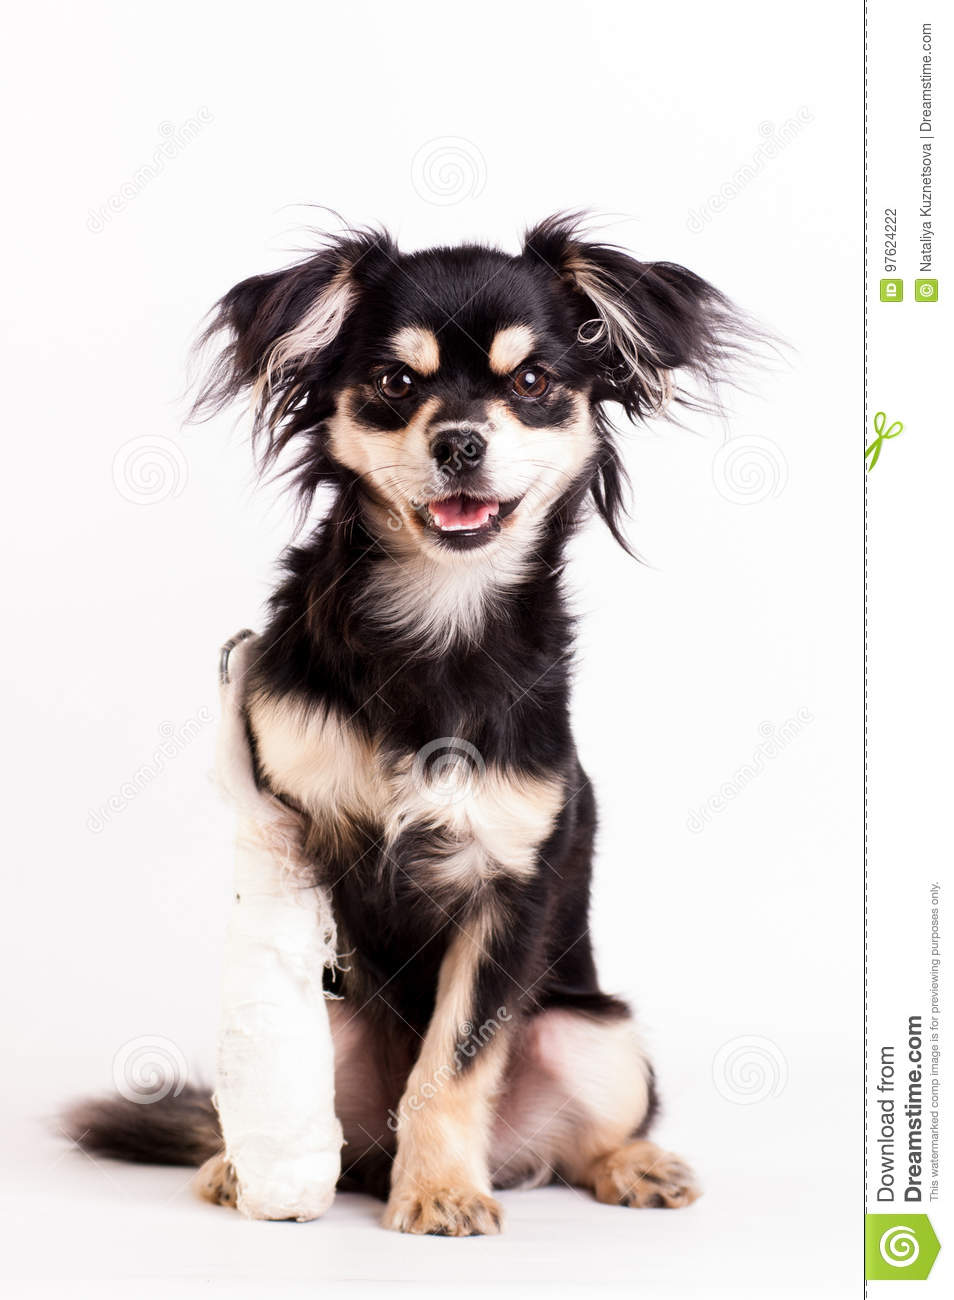 Cute little dog on white background at studio